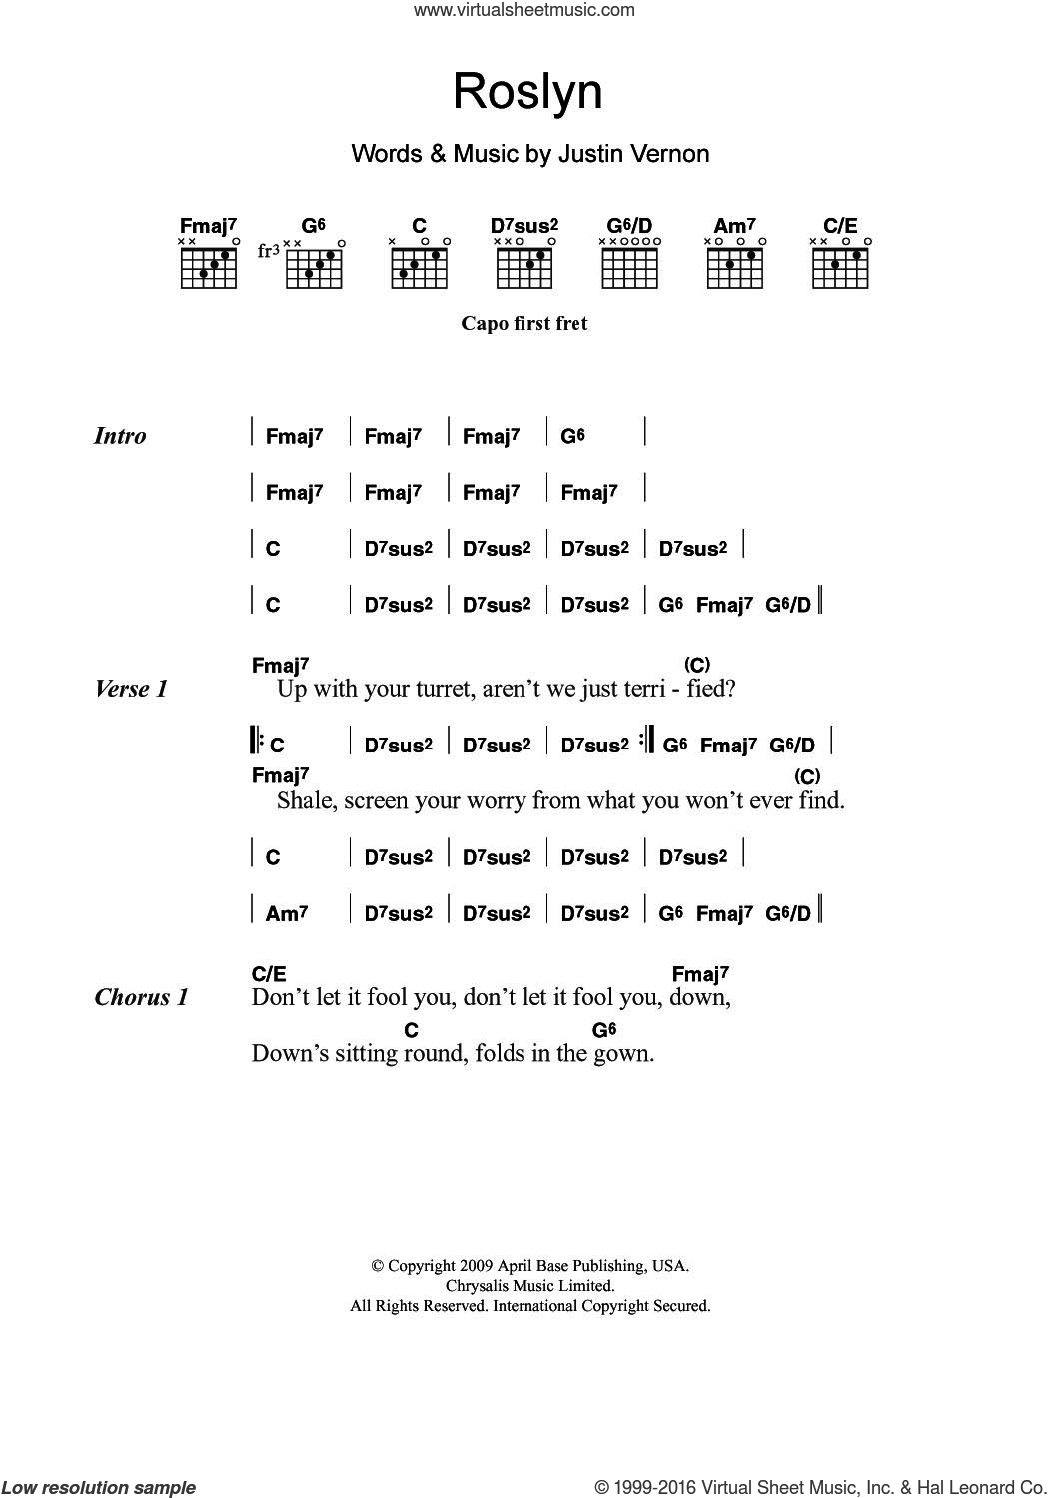 Iver Roslyn Sheet Music For Guitar Chords Pdf